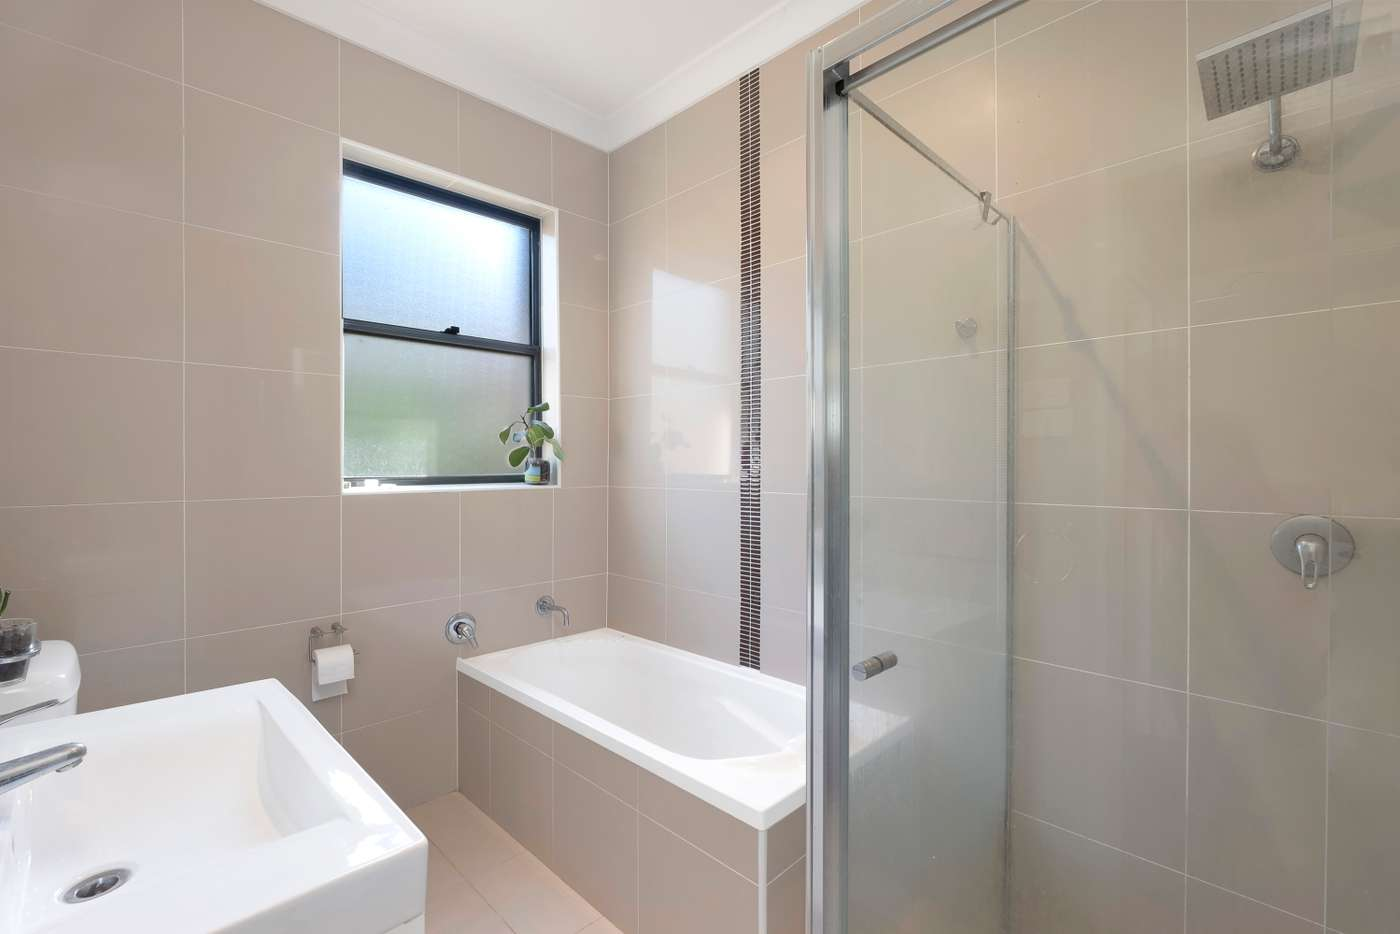 Fifth view of Homely townhouse listing, 39/23 - 33 Napier Street, Parramatta NSW 2150